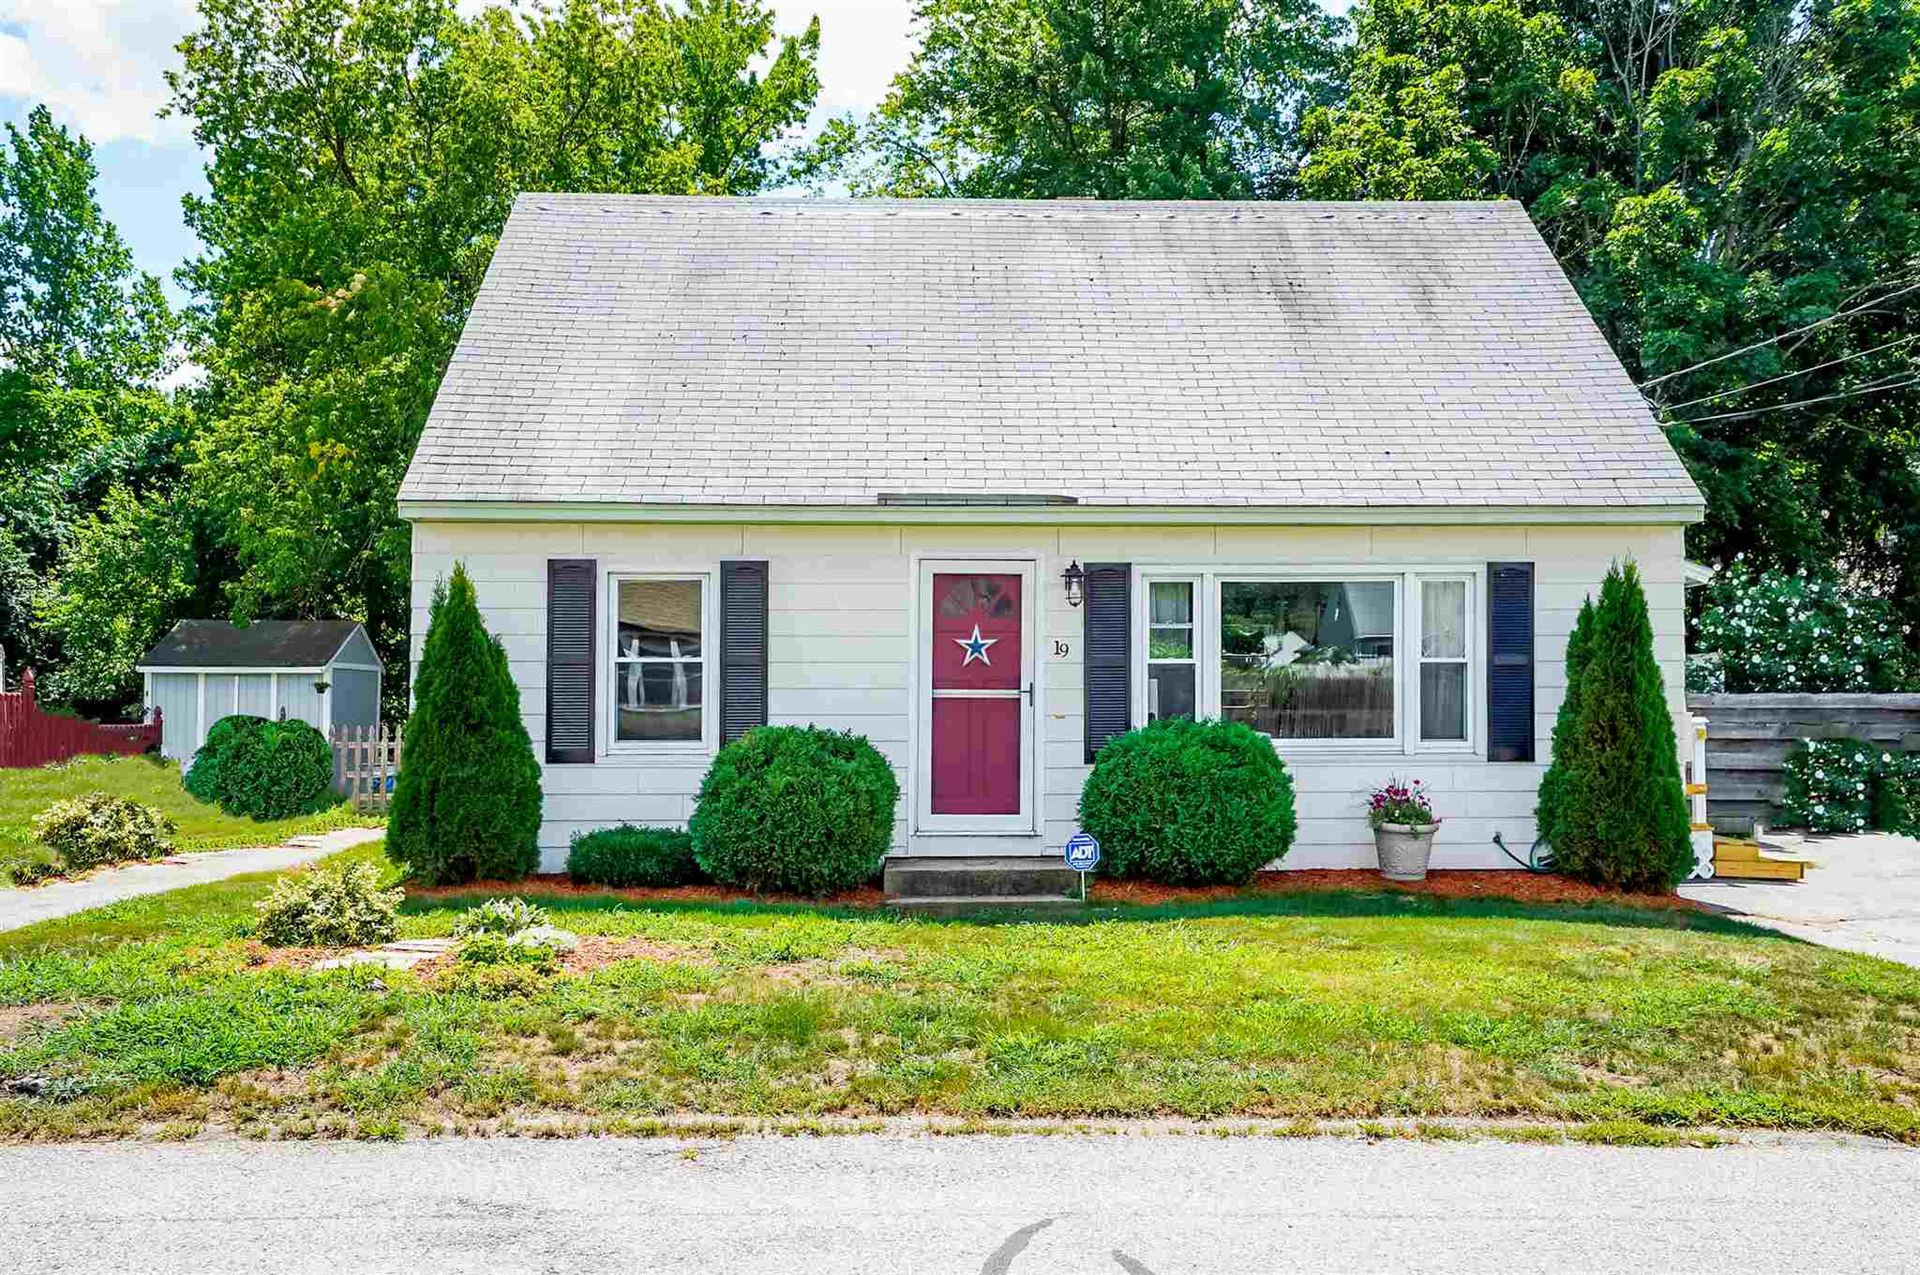 19 Bow Street, Manchester, NH 03103 - MLS#: 4820832